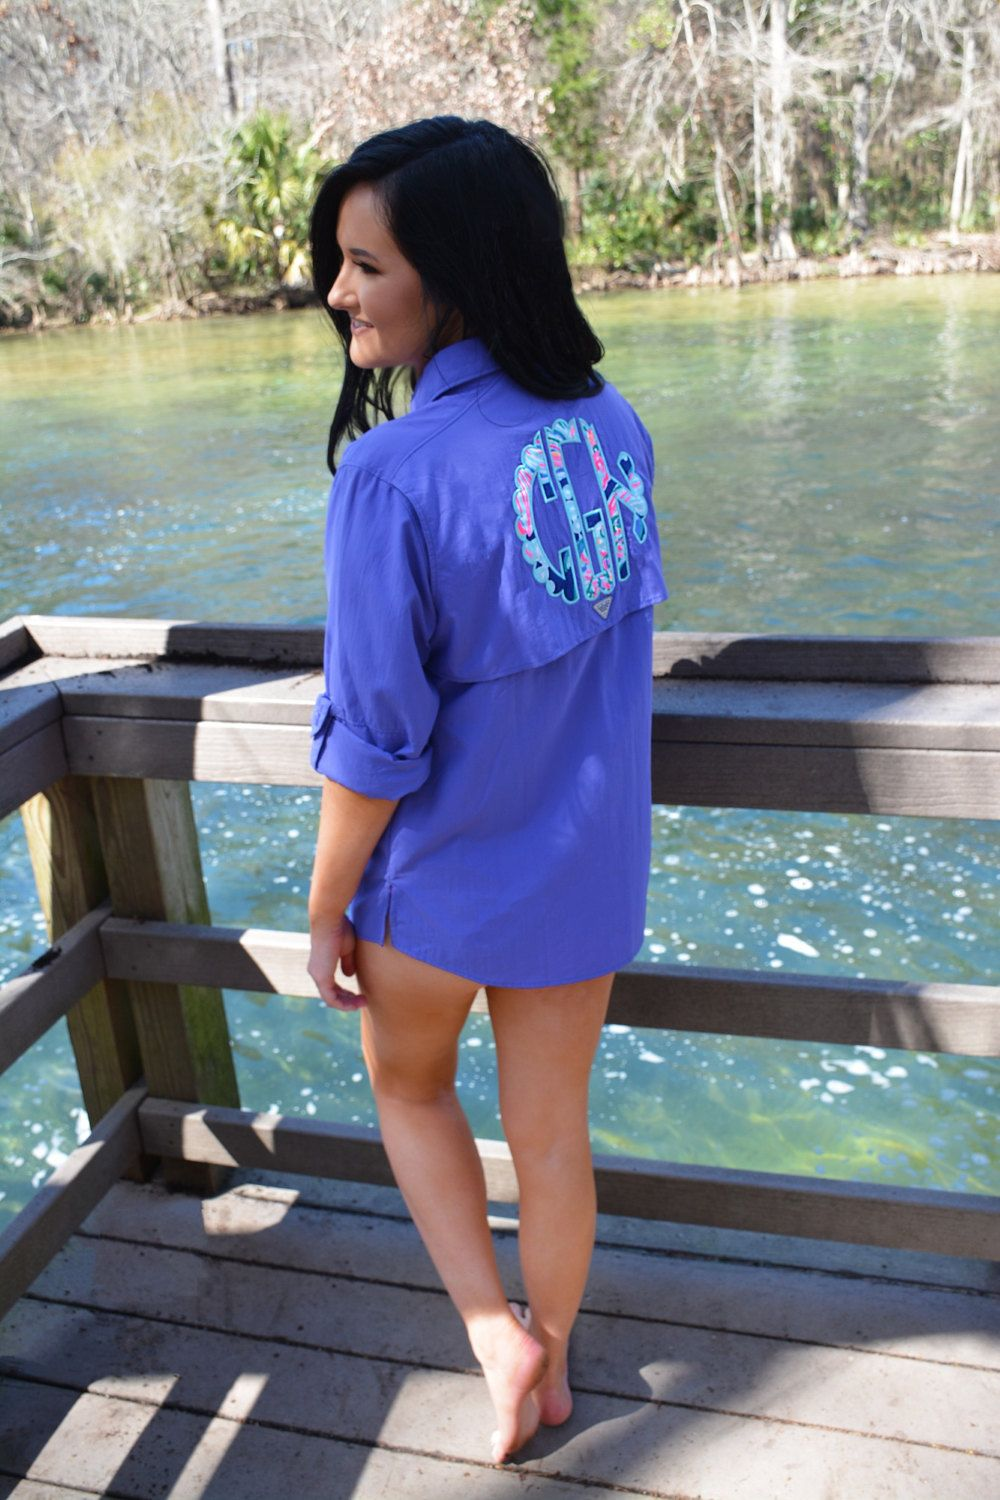 b00e4724c92a6 Preppy Lilly Pulitzer Monogrammed Columbia PFG Fishing Shirt Cover Up by  TantrumEmbroidery on Etsy